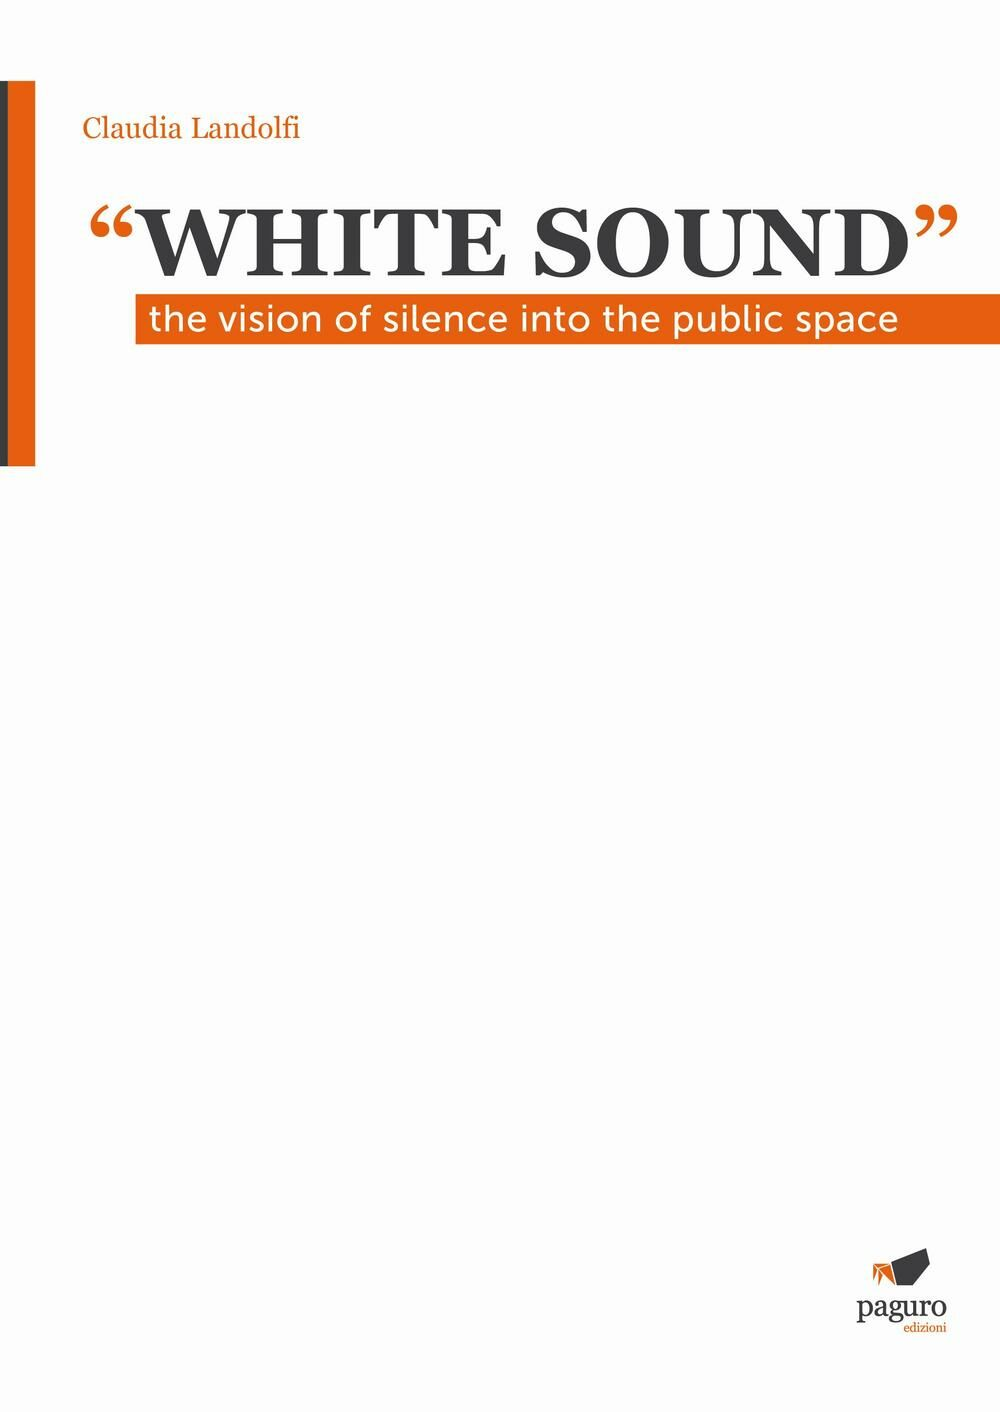 «White sound». The vision of silence into the public space